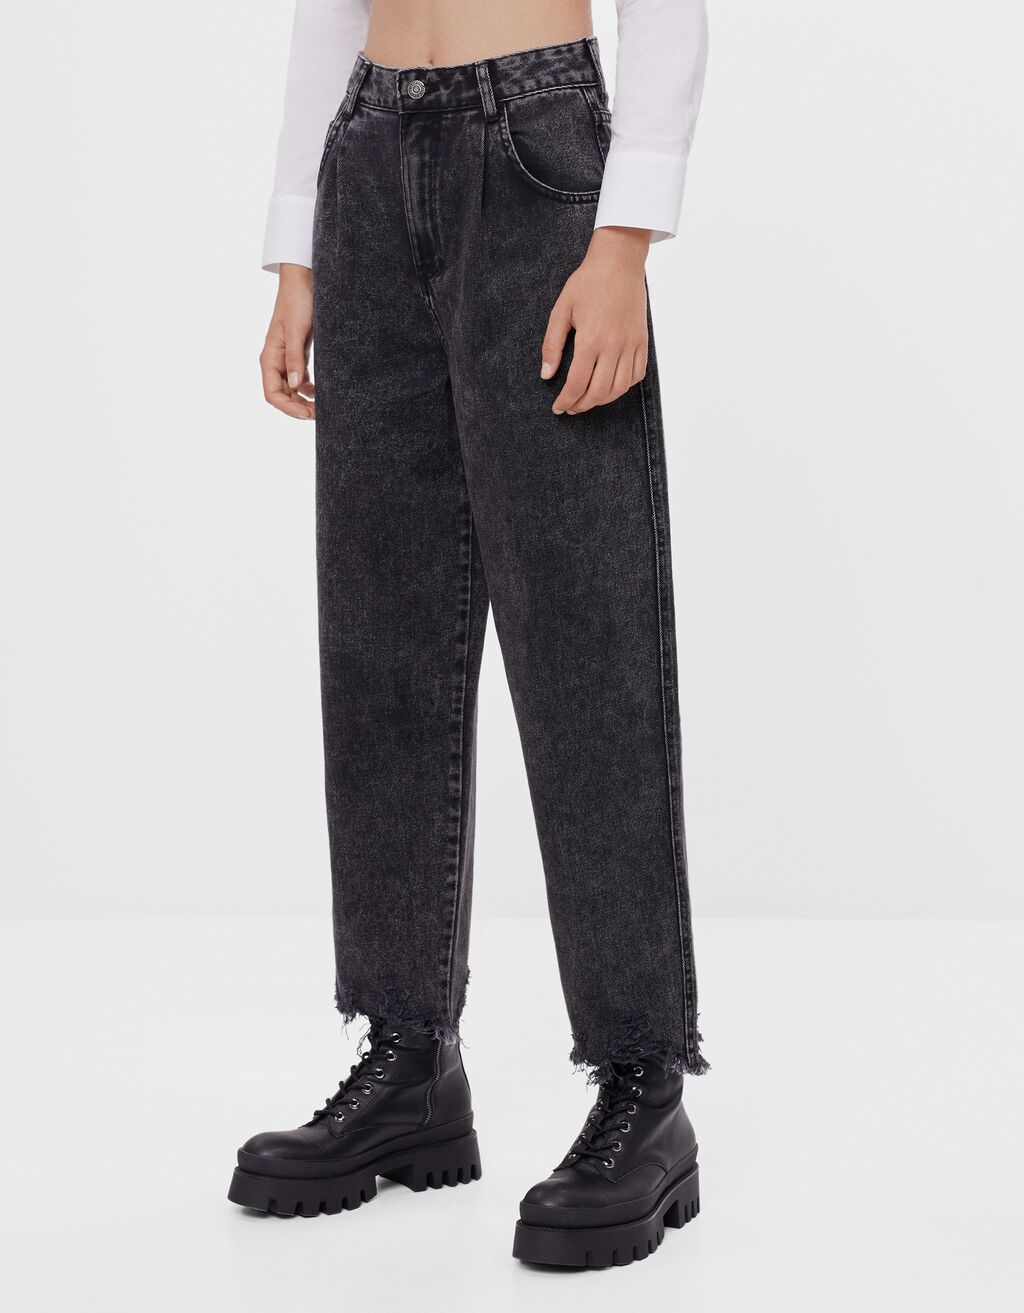 Balloon jeans with frayed hems